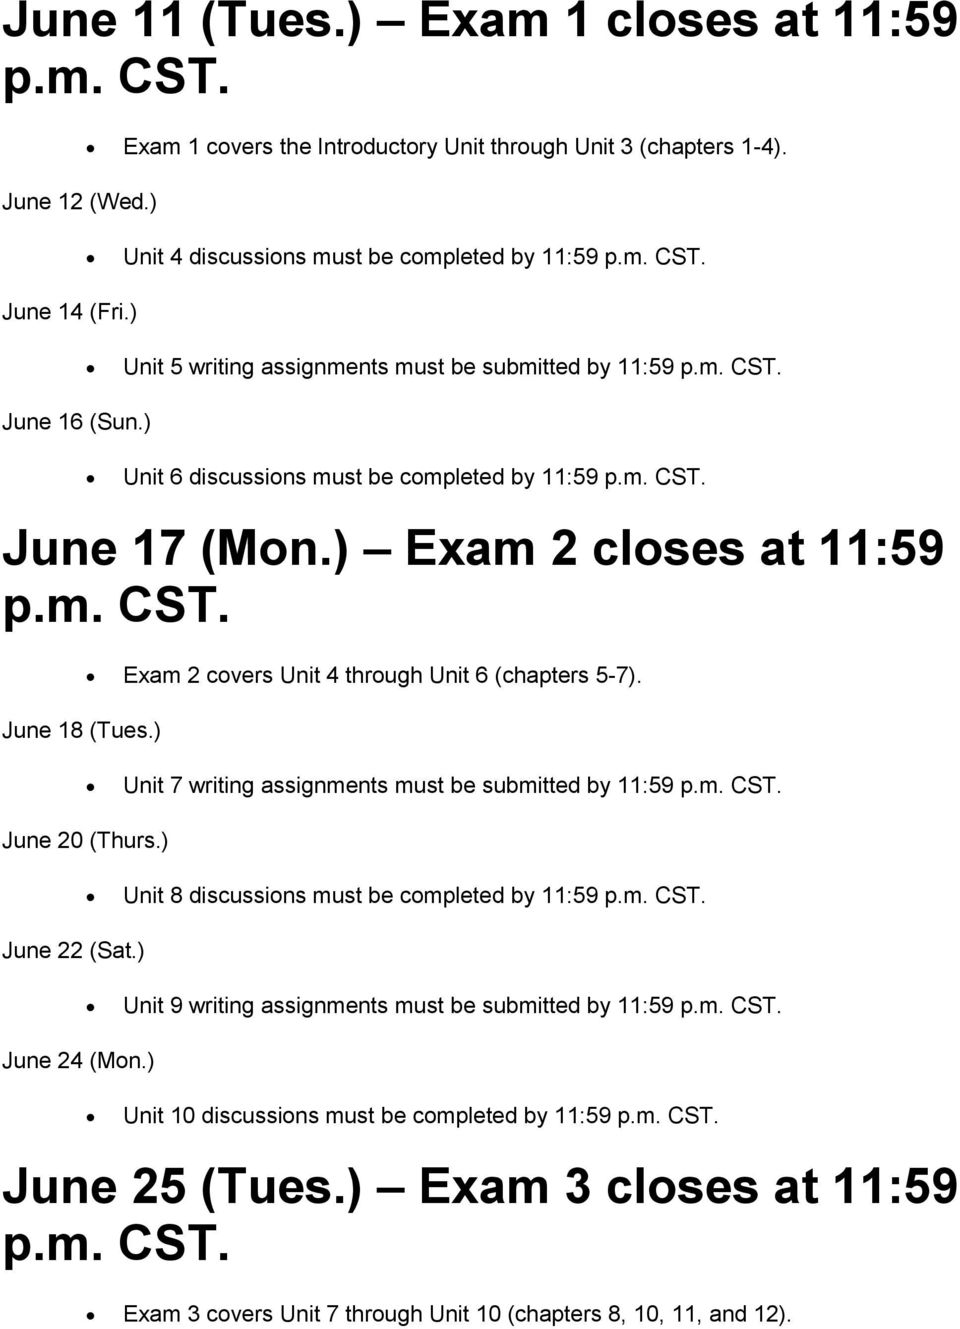 ) Exam 2 covers Unit 4 through Unit 6 (chapters 5-7). Unit 7 writing assignments must be submitted by 11:59 p.m. CST. June 20 (Thurs.) Unit 8 discussions must be completed by 11:59 p.m. CST. June 22 (Sat.